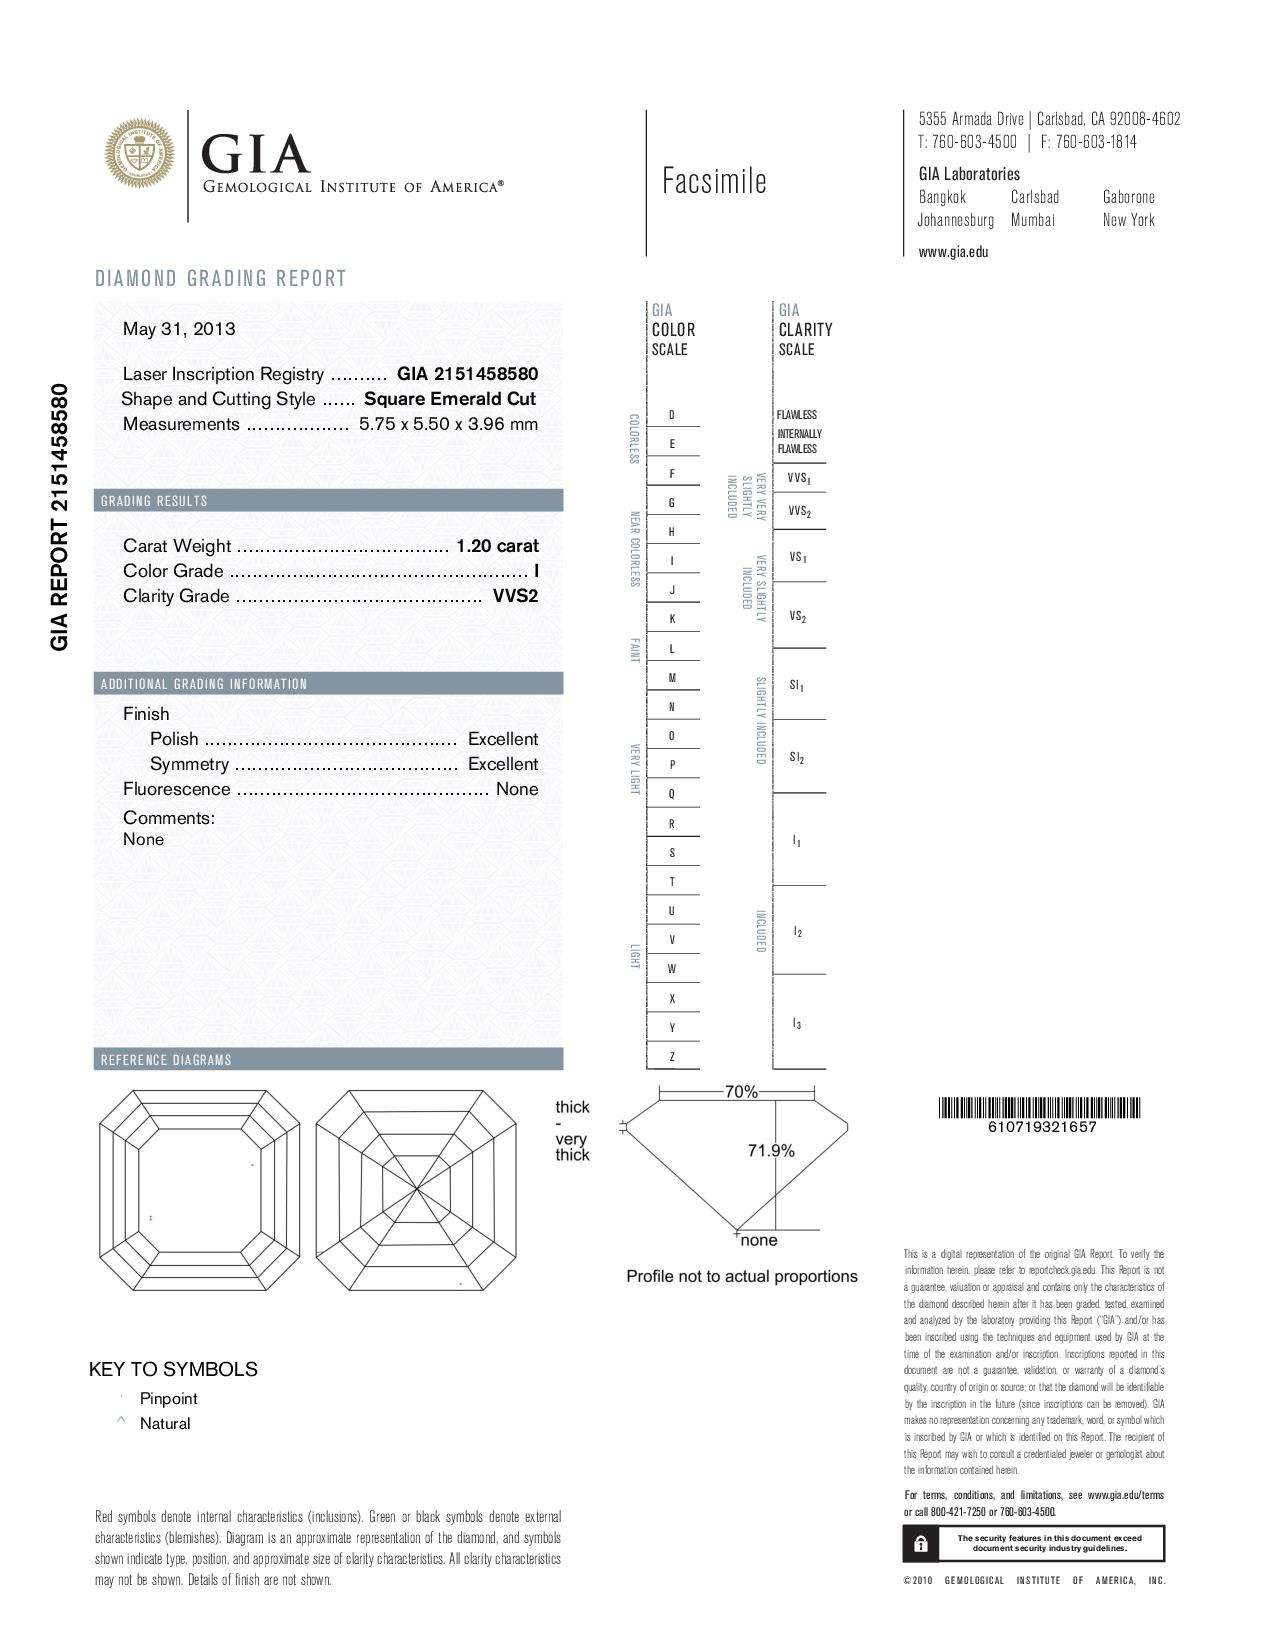 This is a 1.20 carat asscher shape, I color, VVS2 clarity natural diamond accompanied by a GIA grading report.